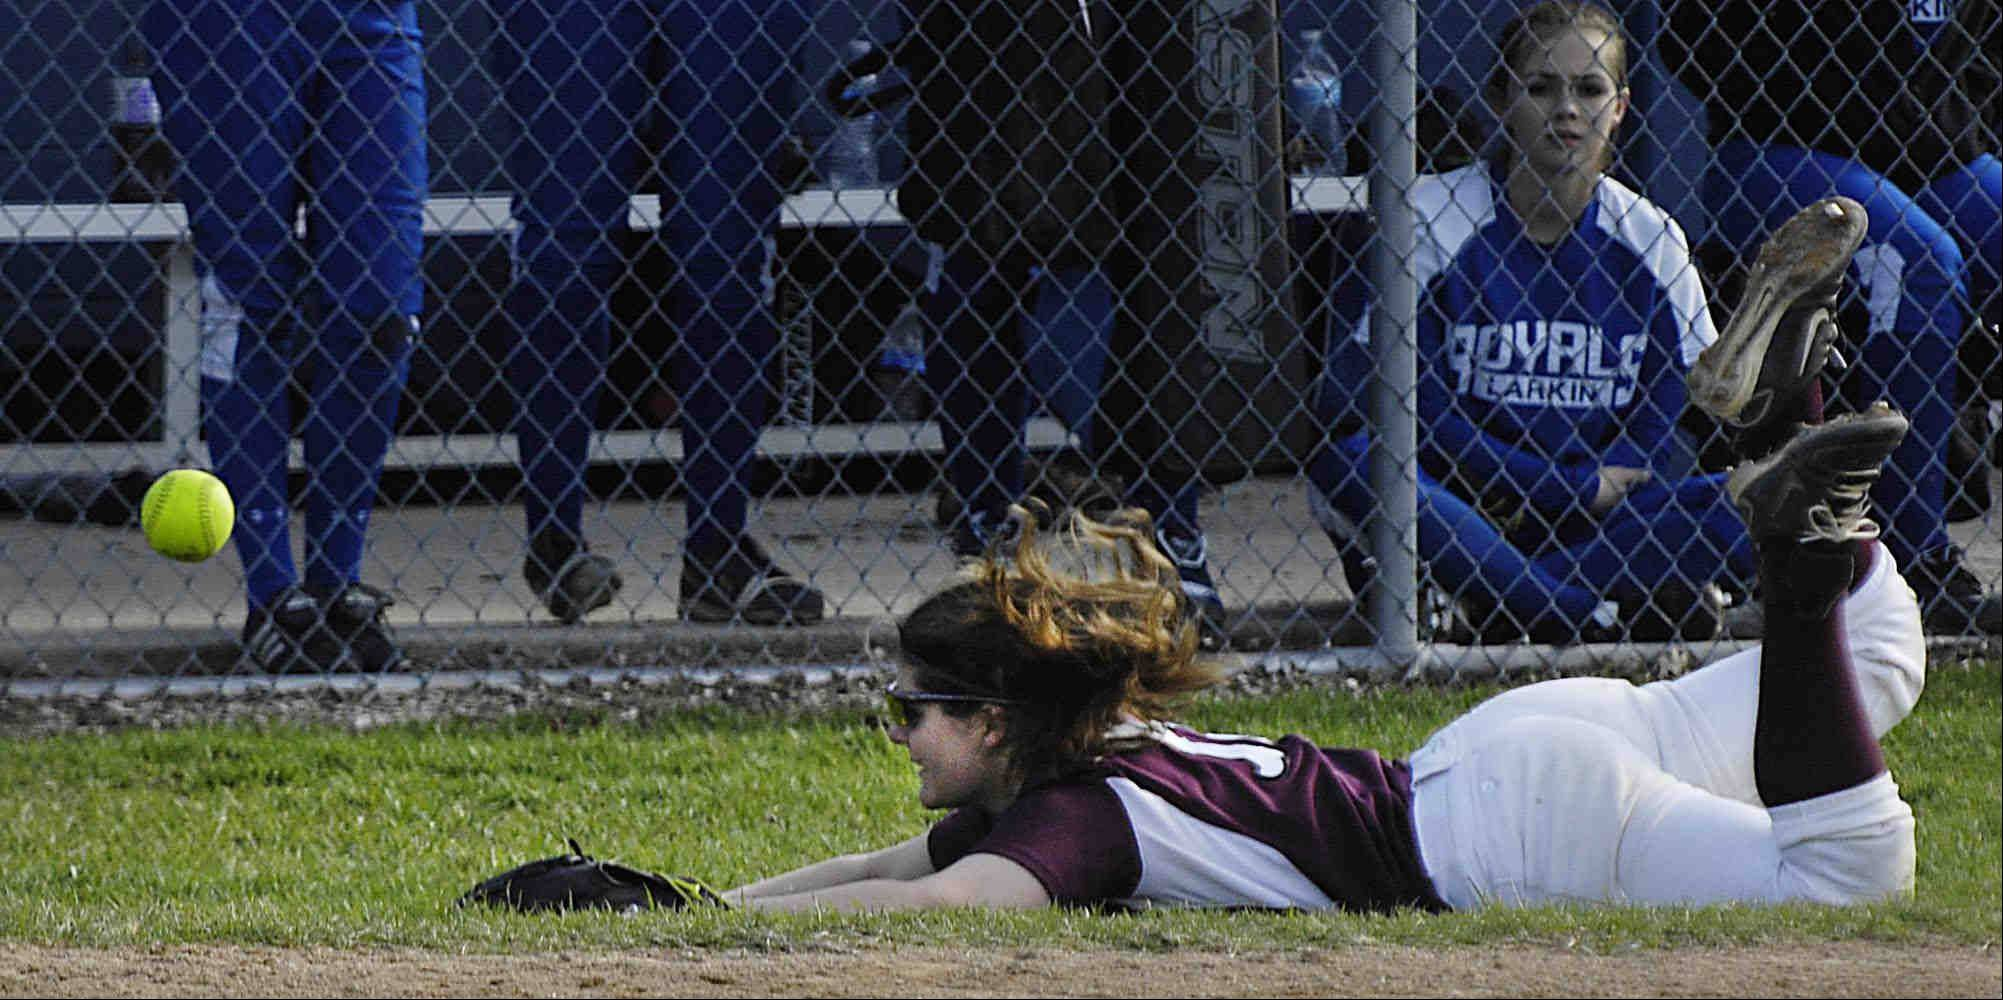 Elgin third baseman Anna Eckholm dives and misses a foul pop up by Larkin's Jaclyn Saurbaugh Wednesday in Elgin. Eckholm also hit a home run in the 10-0 win.